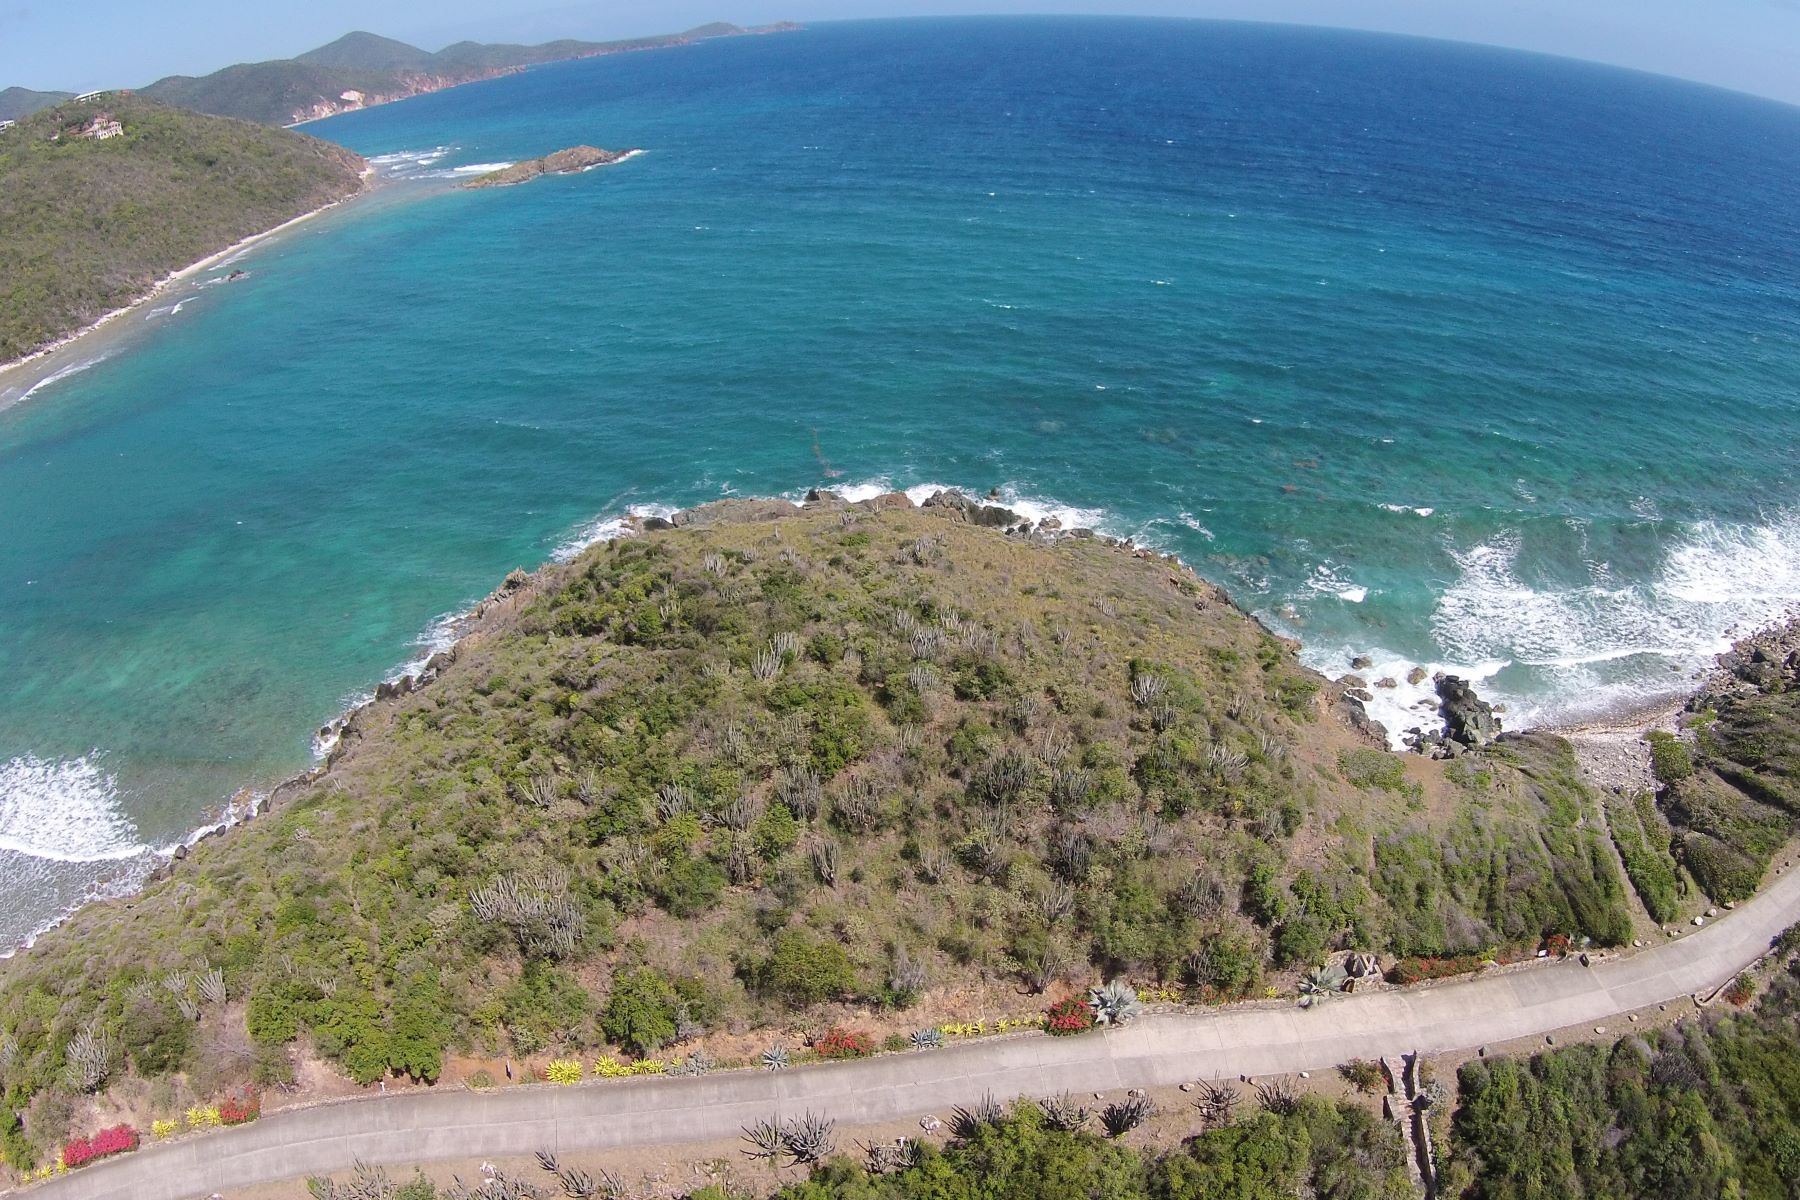 Land for Sale at 15A-10-3R Rendezvous & Ditleff St John, 00830 United States Virgin Islands